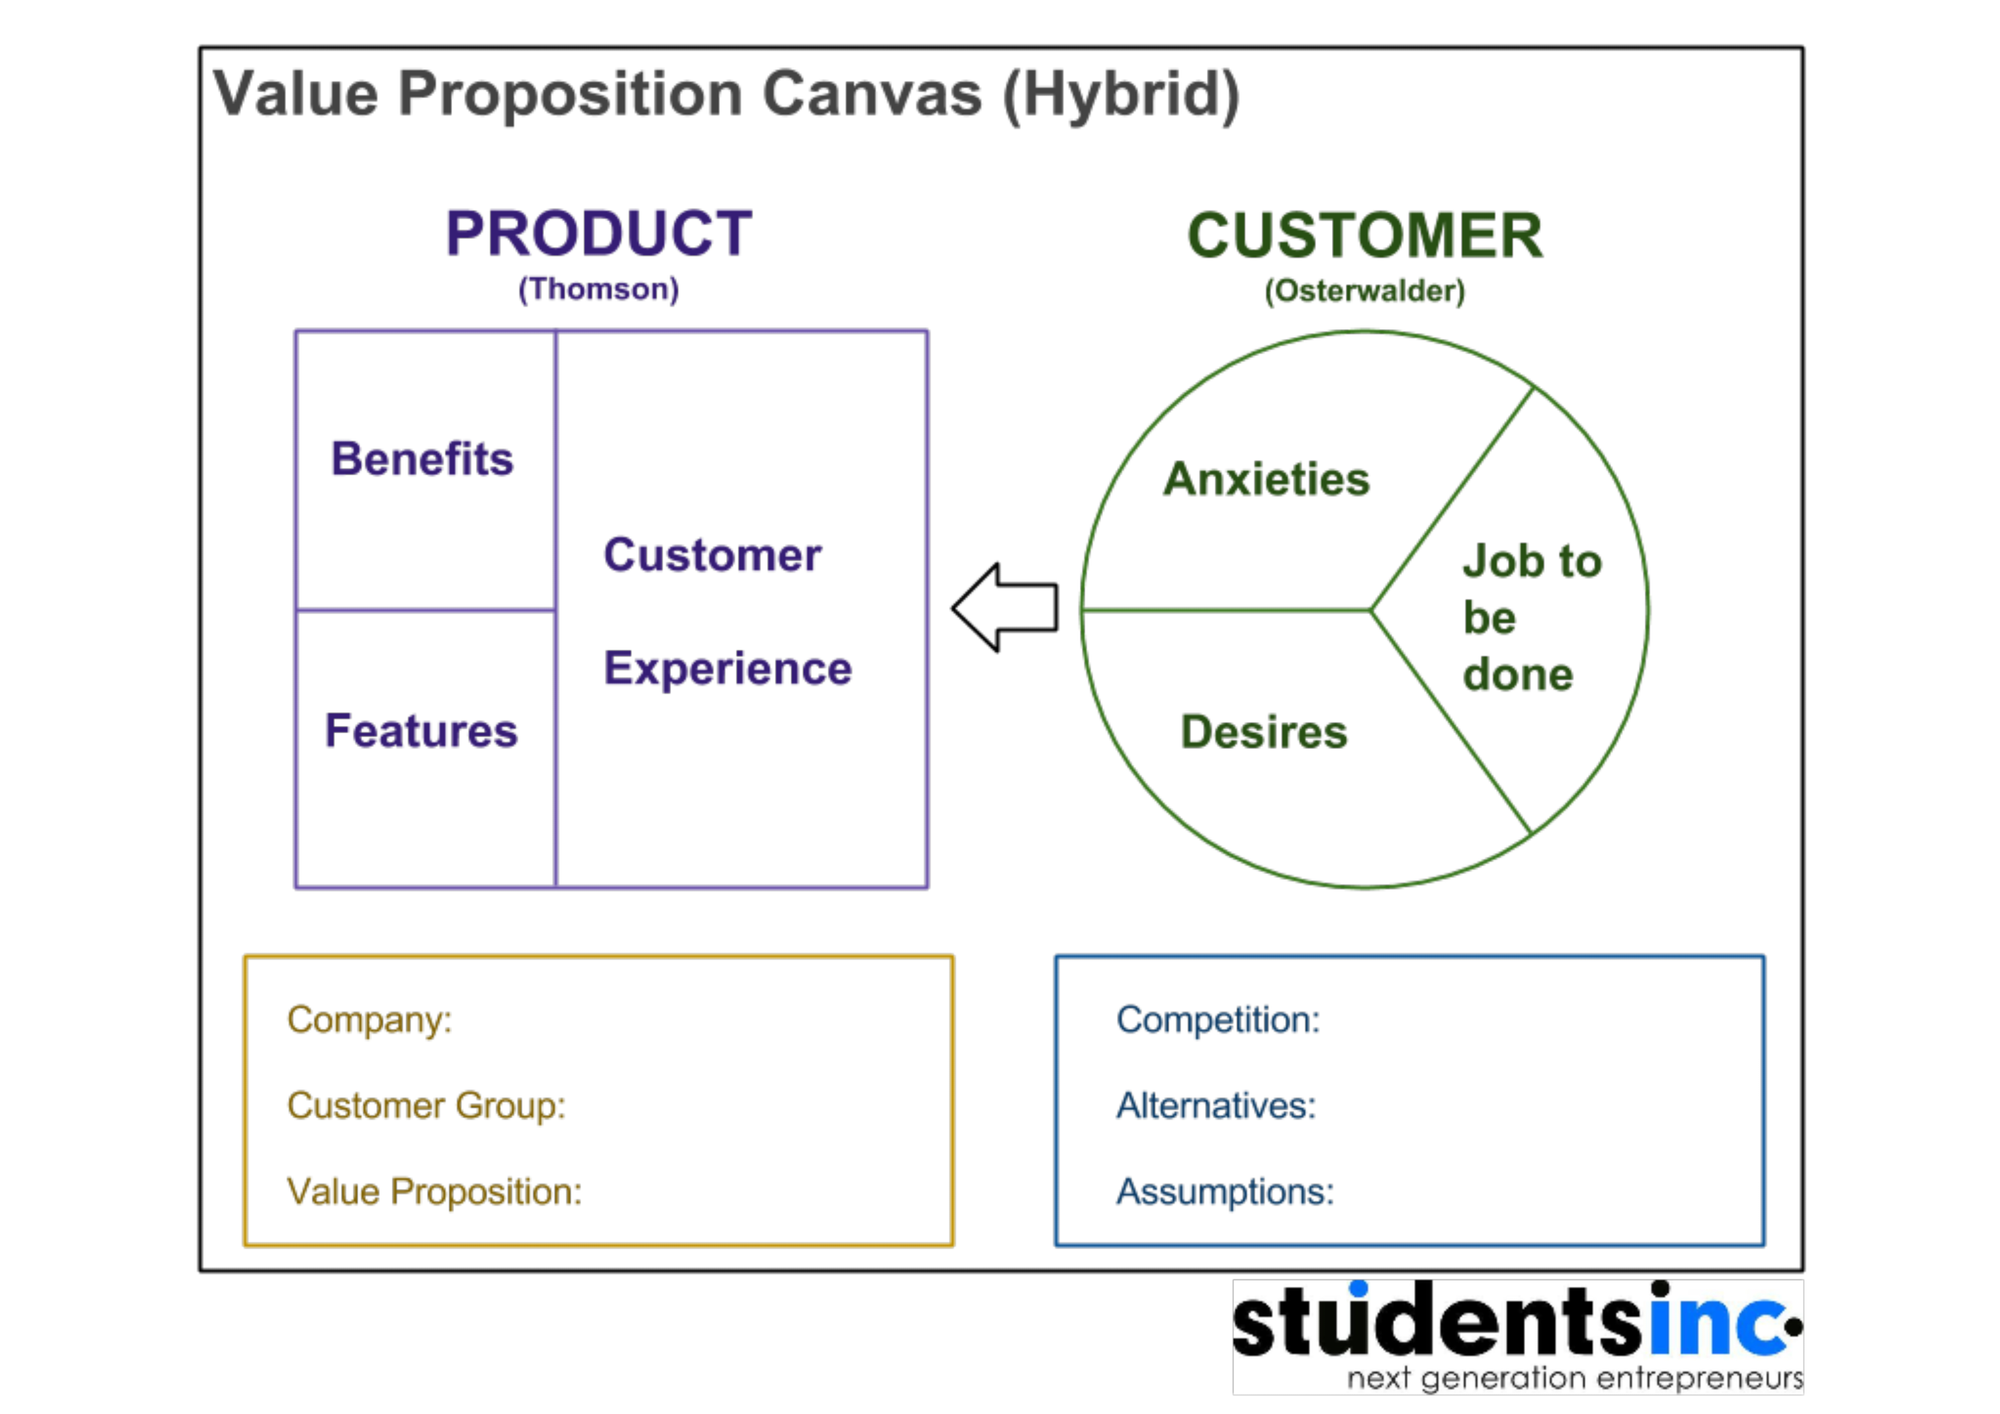 Value Proposition Canvas (version by Nils de Witte)